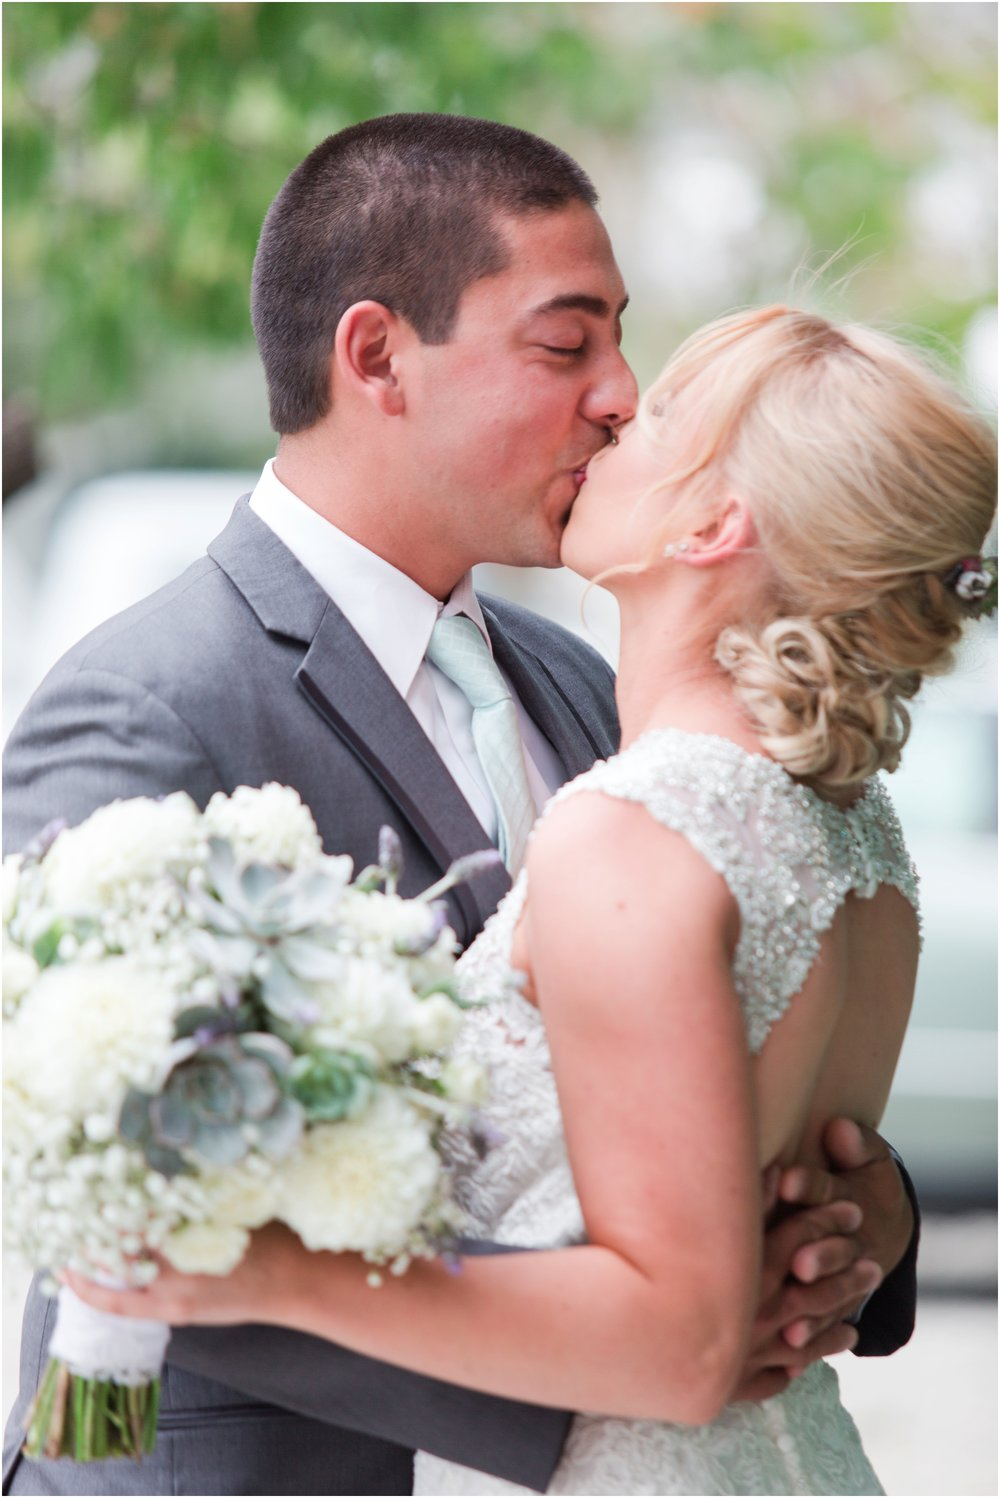 Retzlaff Winery wedding pictures by Briana Calderon Photography_2269.jpg